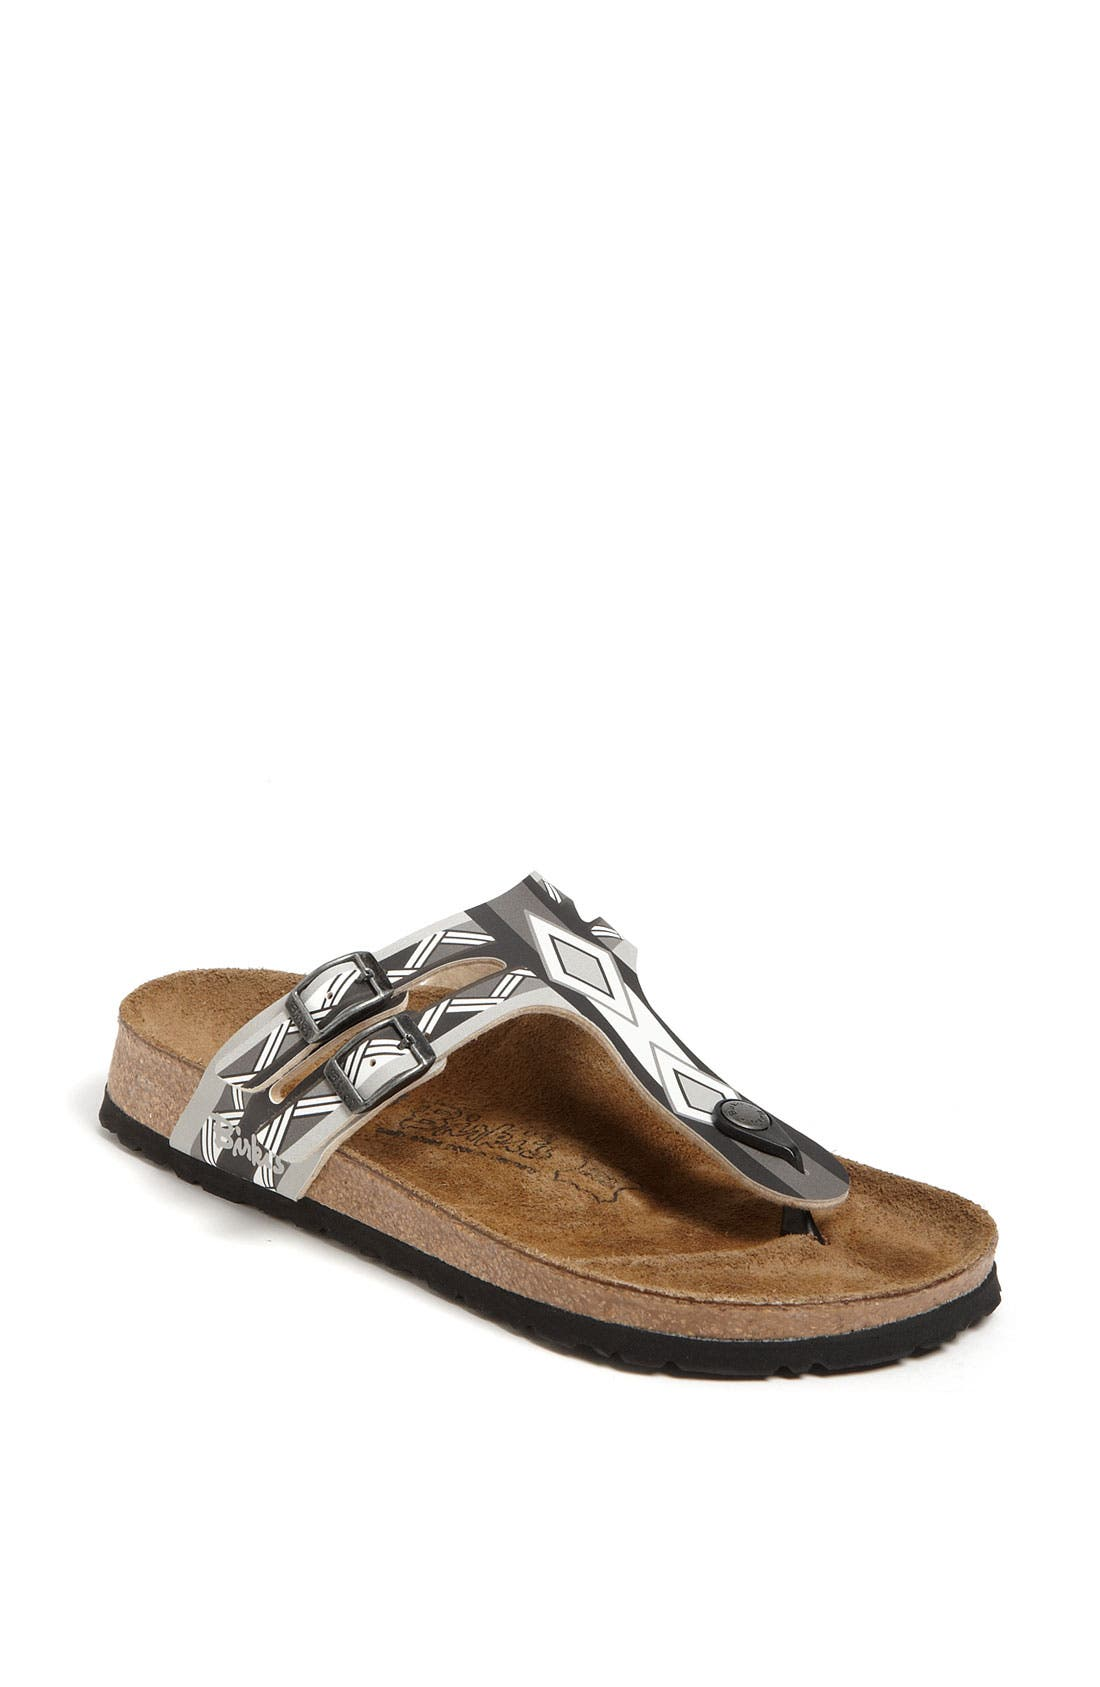 Alternate Image 1 Selected - Birki's® 'Milos' Sandal